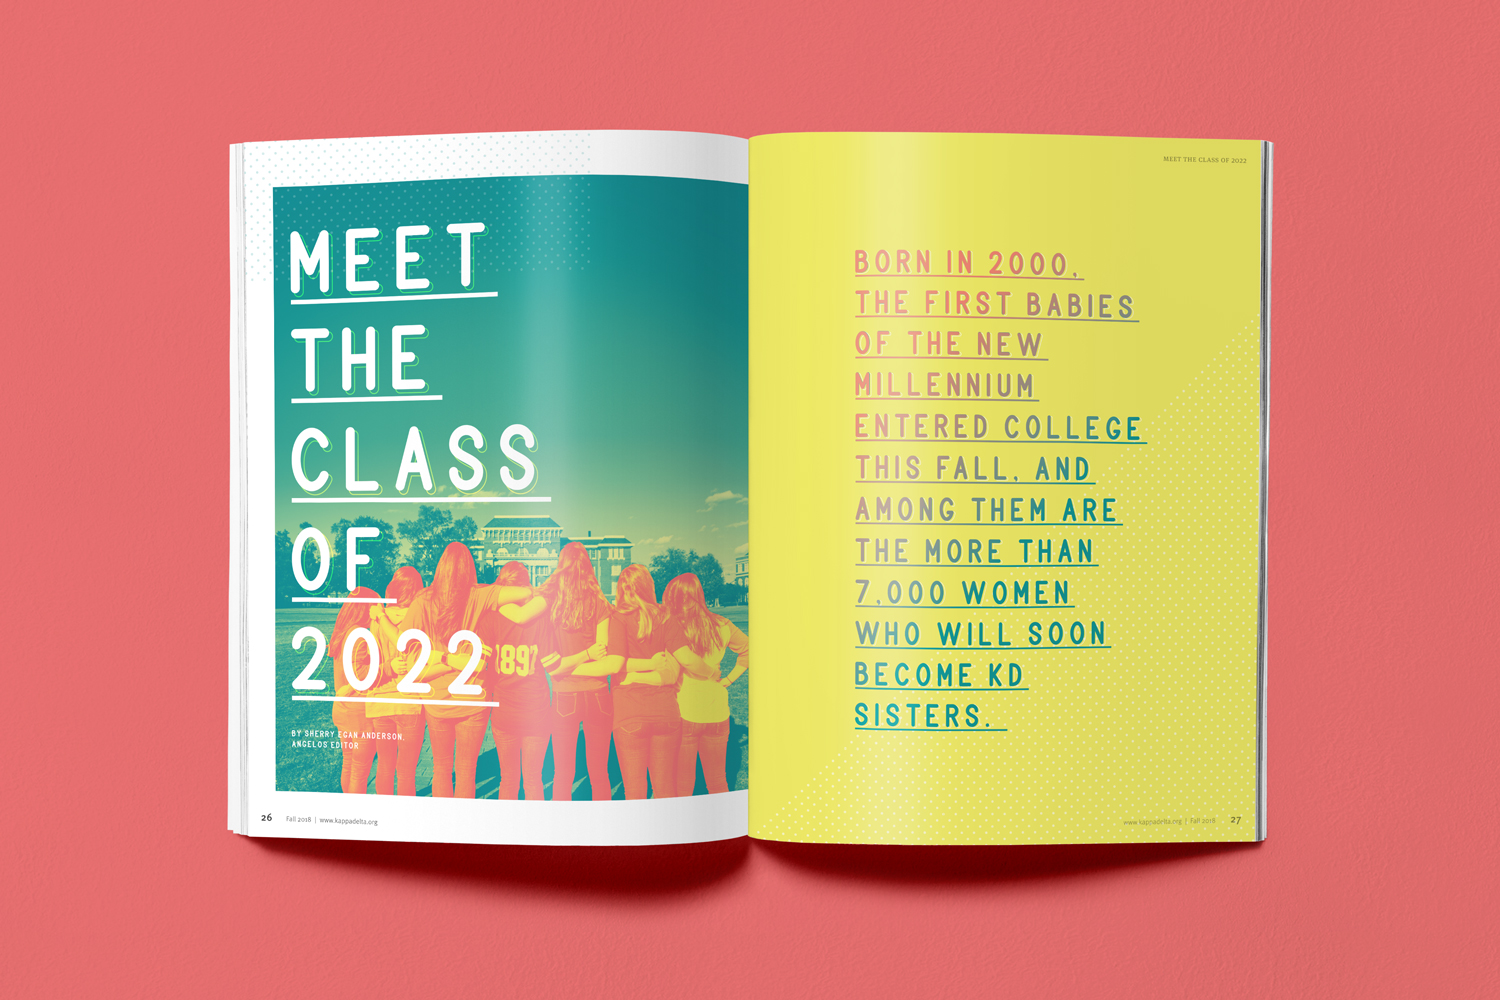 Meet the Class of 2022 - See what the experts say about Generation Z